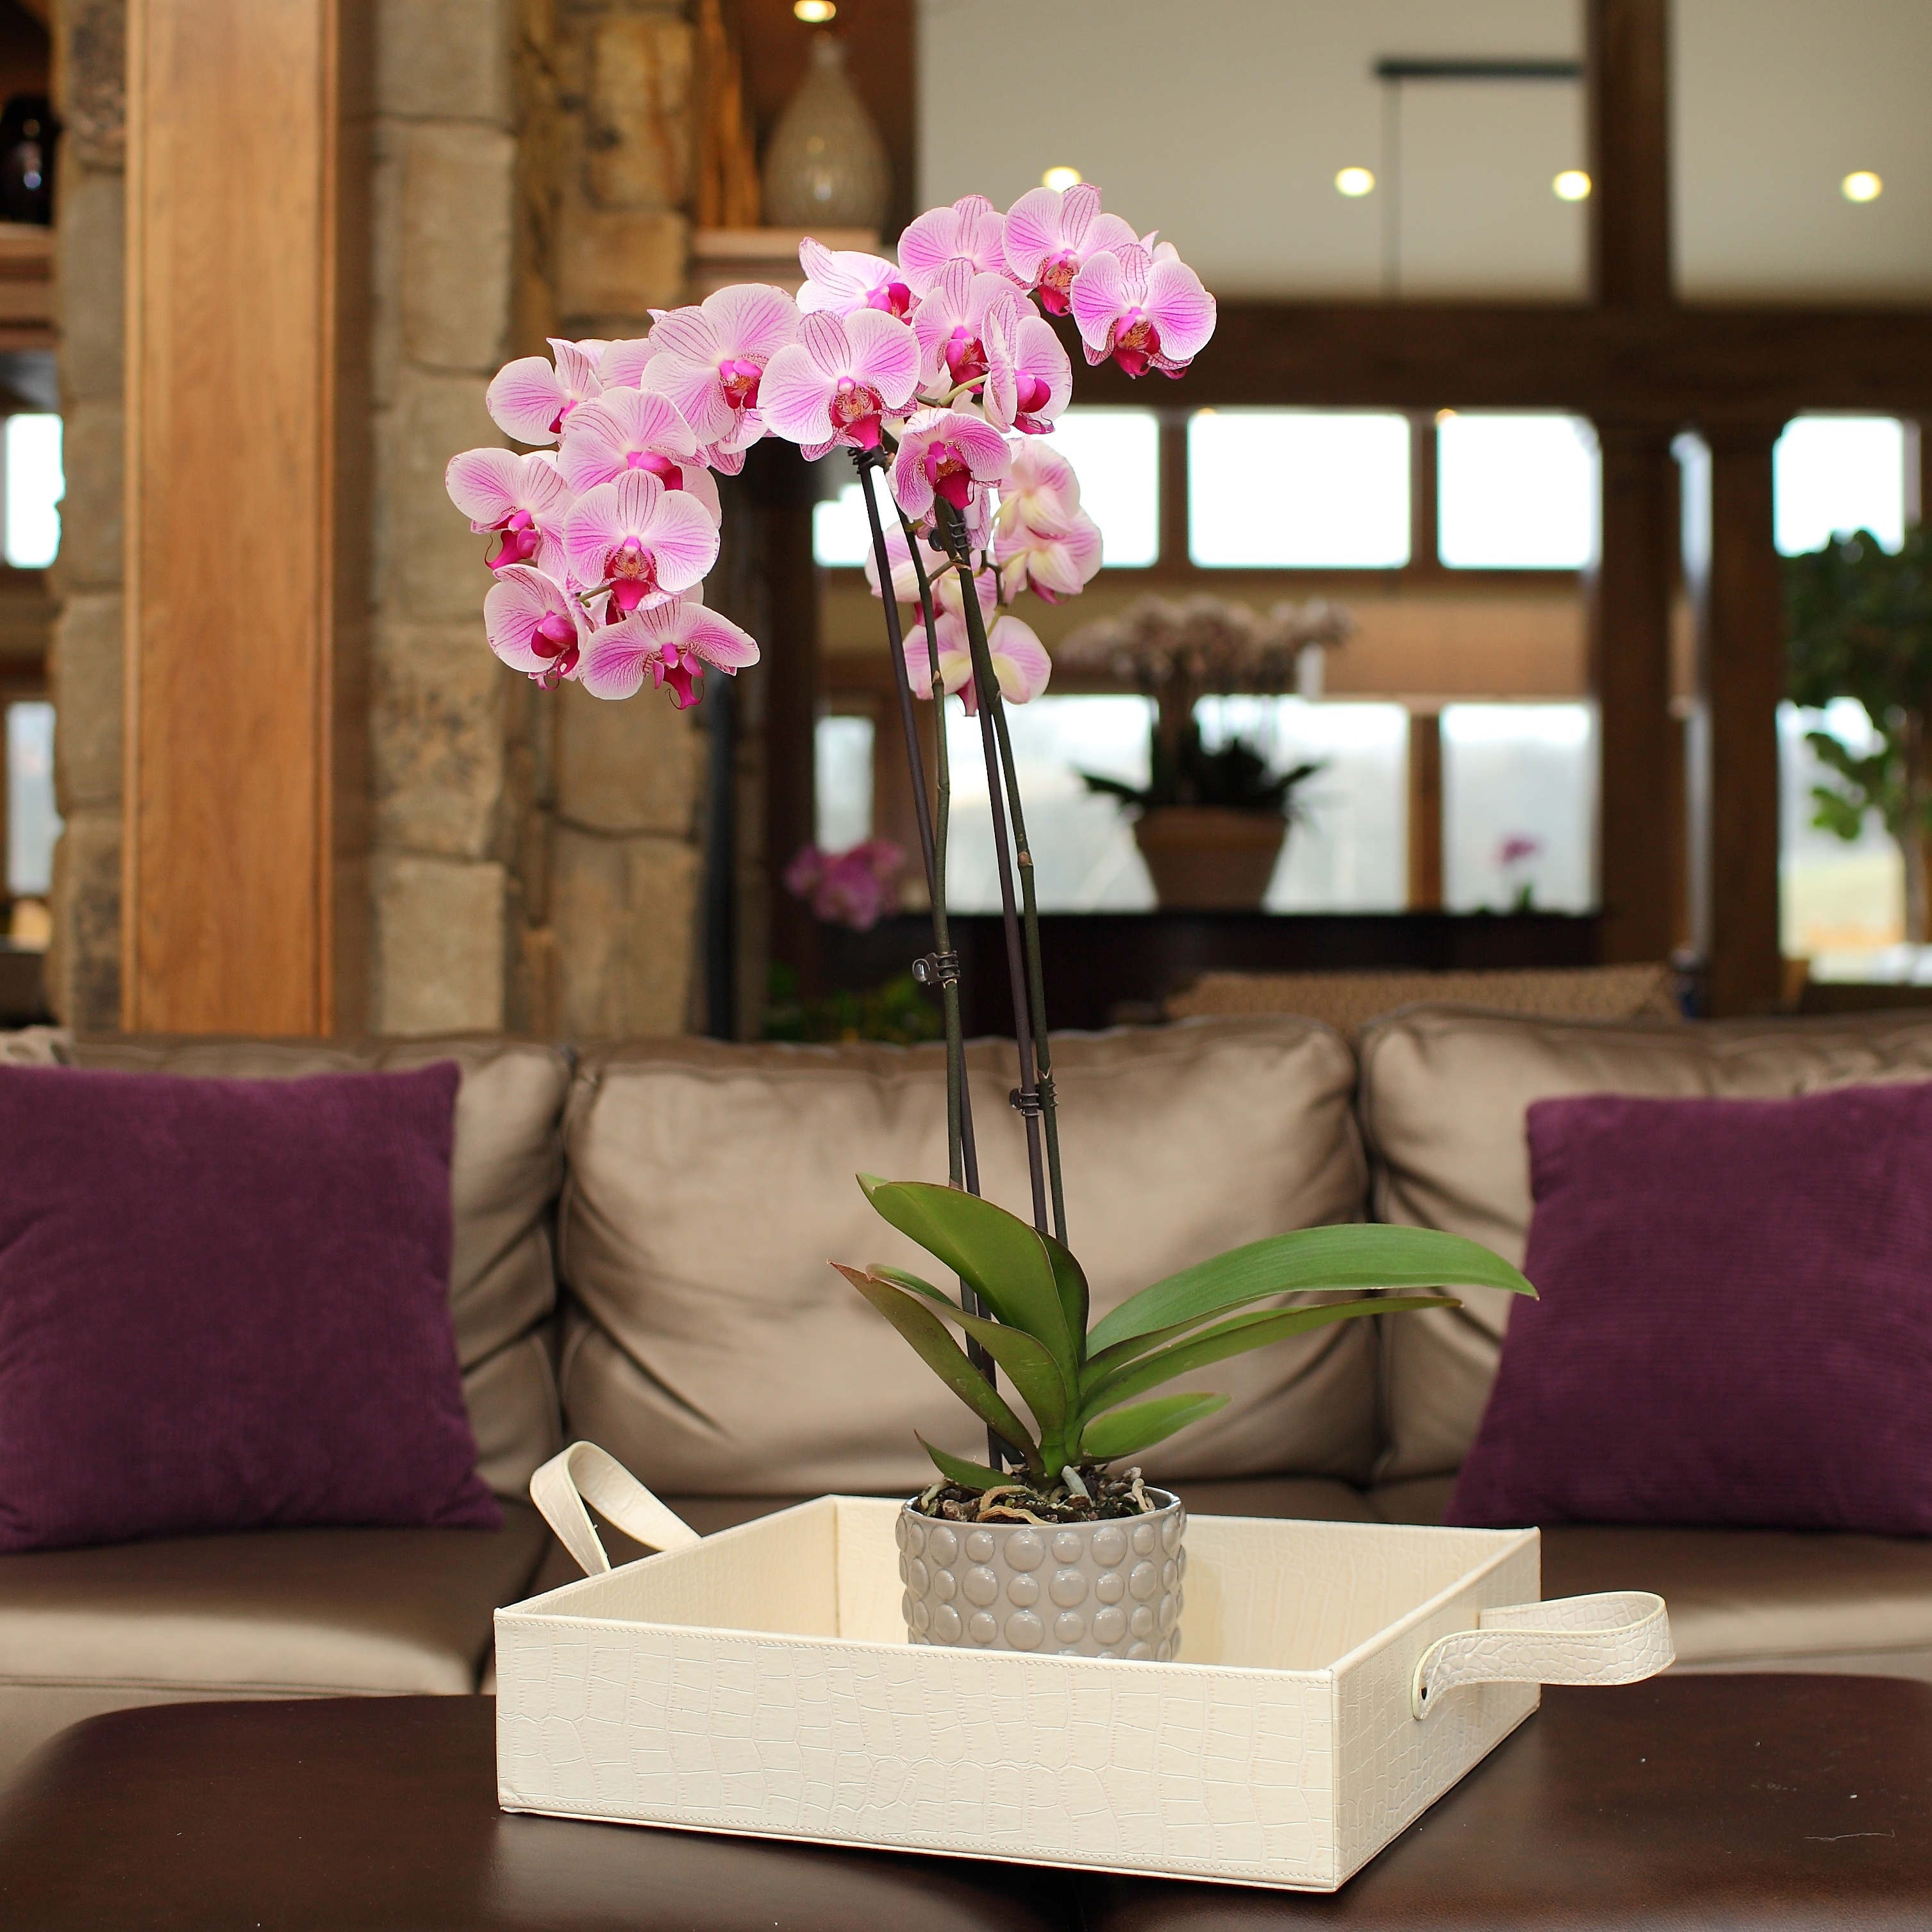 When is the Best Time for Repotting Orchids?